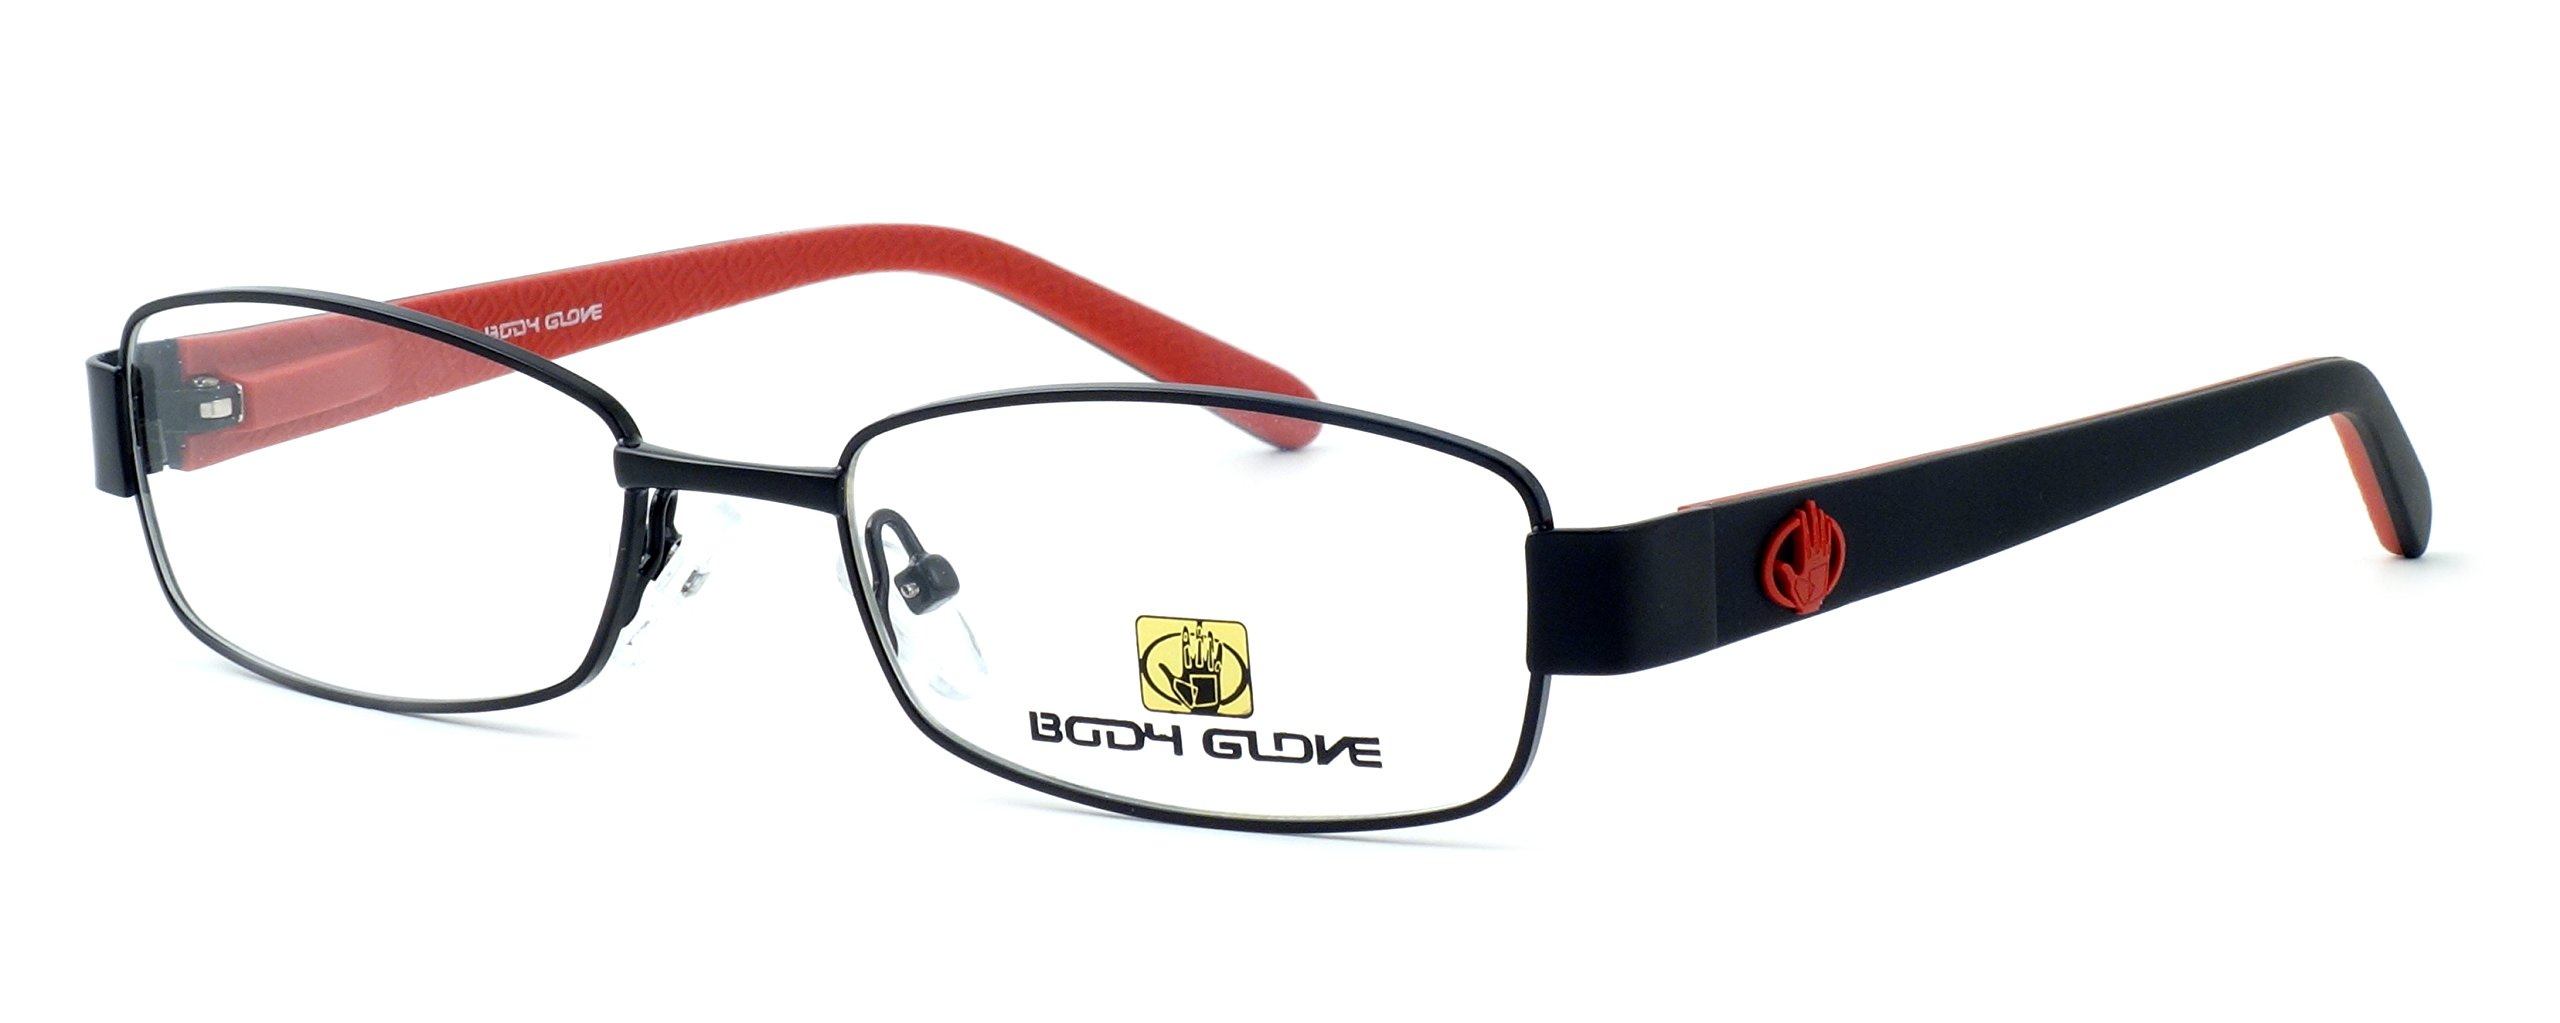 Body Glove Rx-able Frames